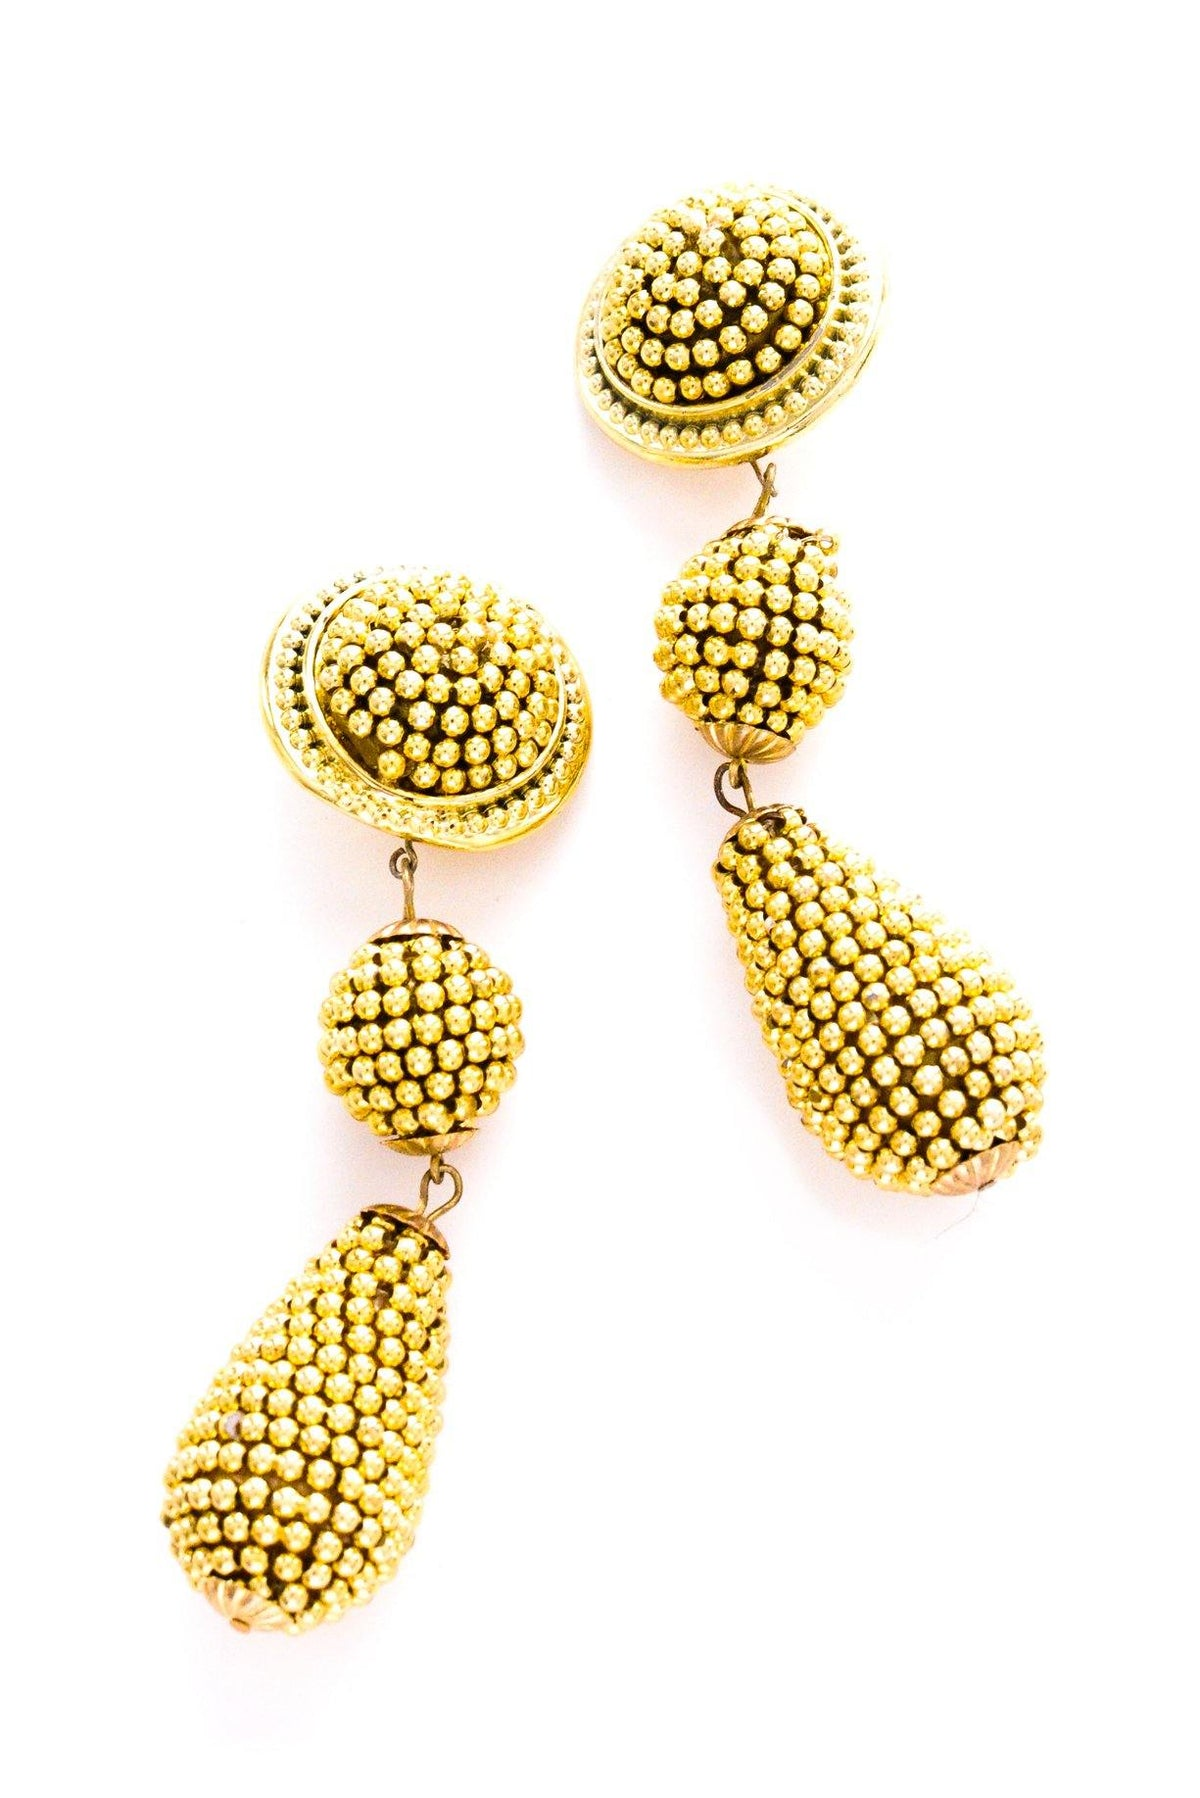 Vintage statement beaded earrings from Sweet & Spark.